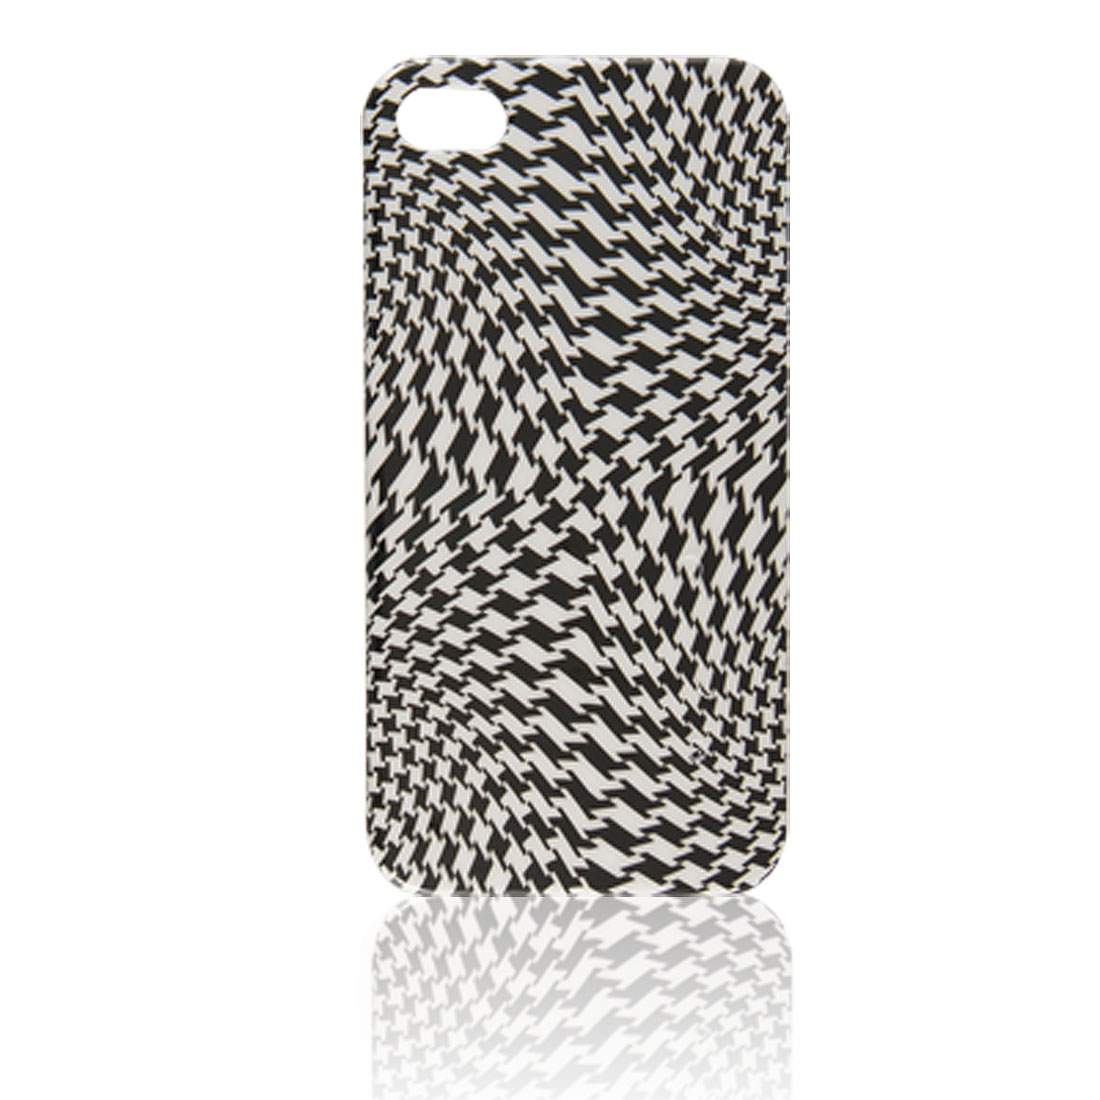 Houndstooth Pattern White Black IMD Back Protector for iPhone 4 4G